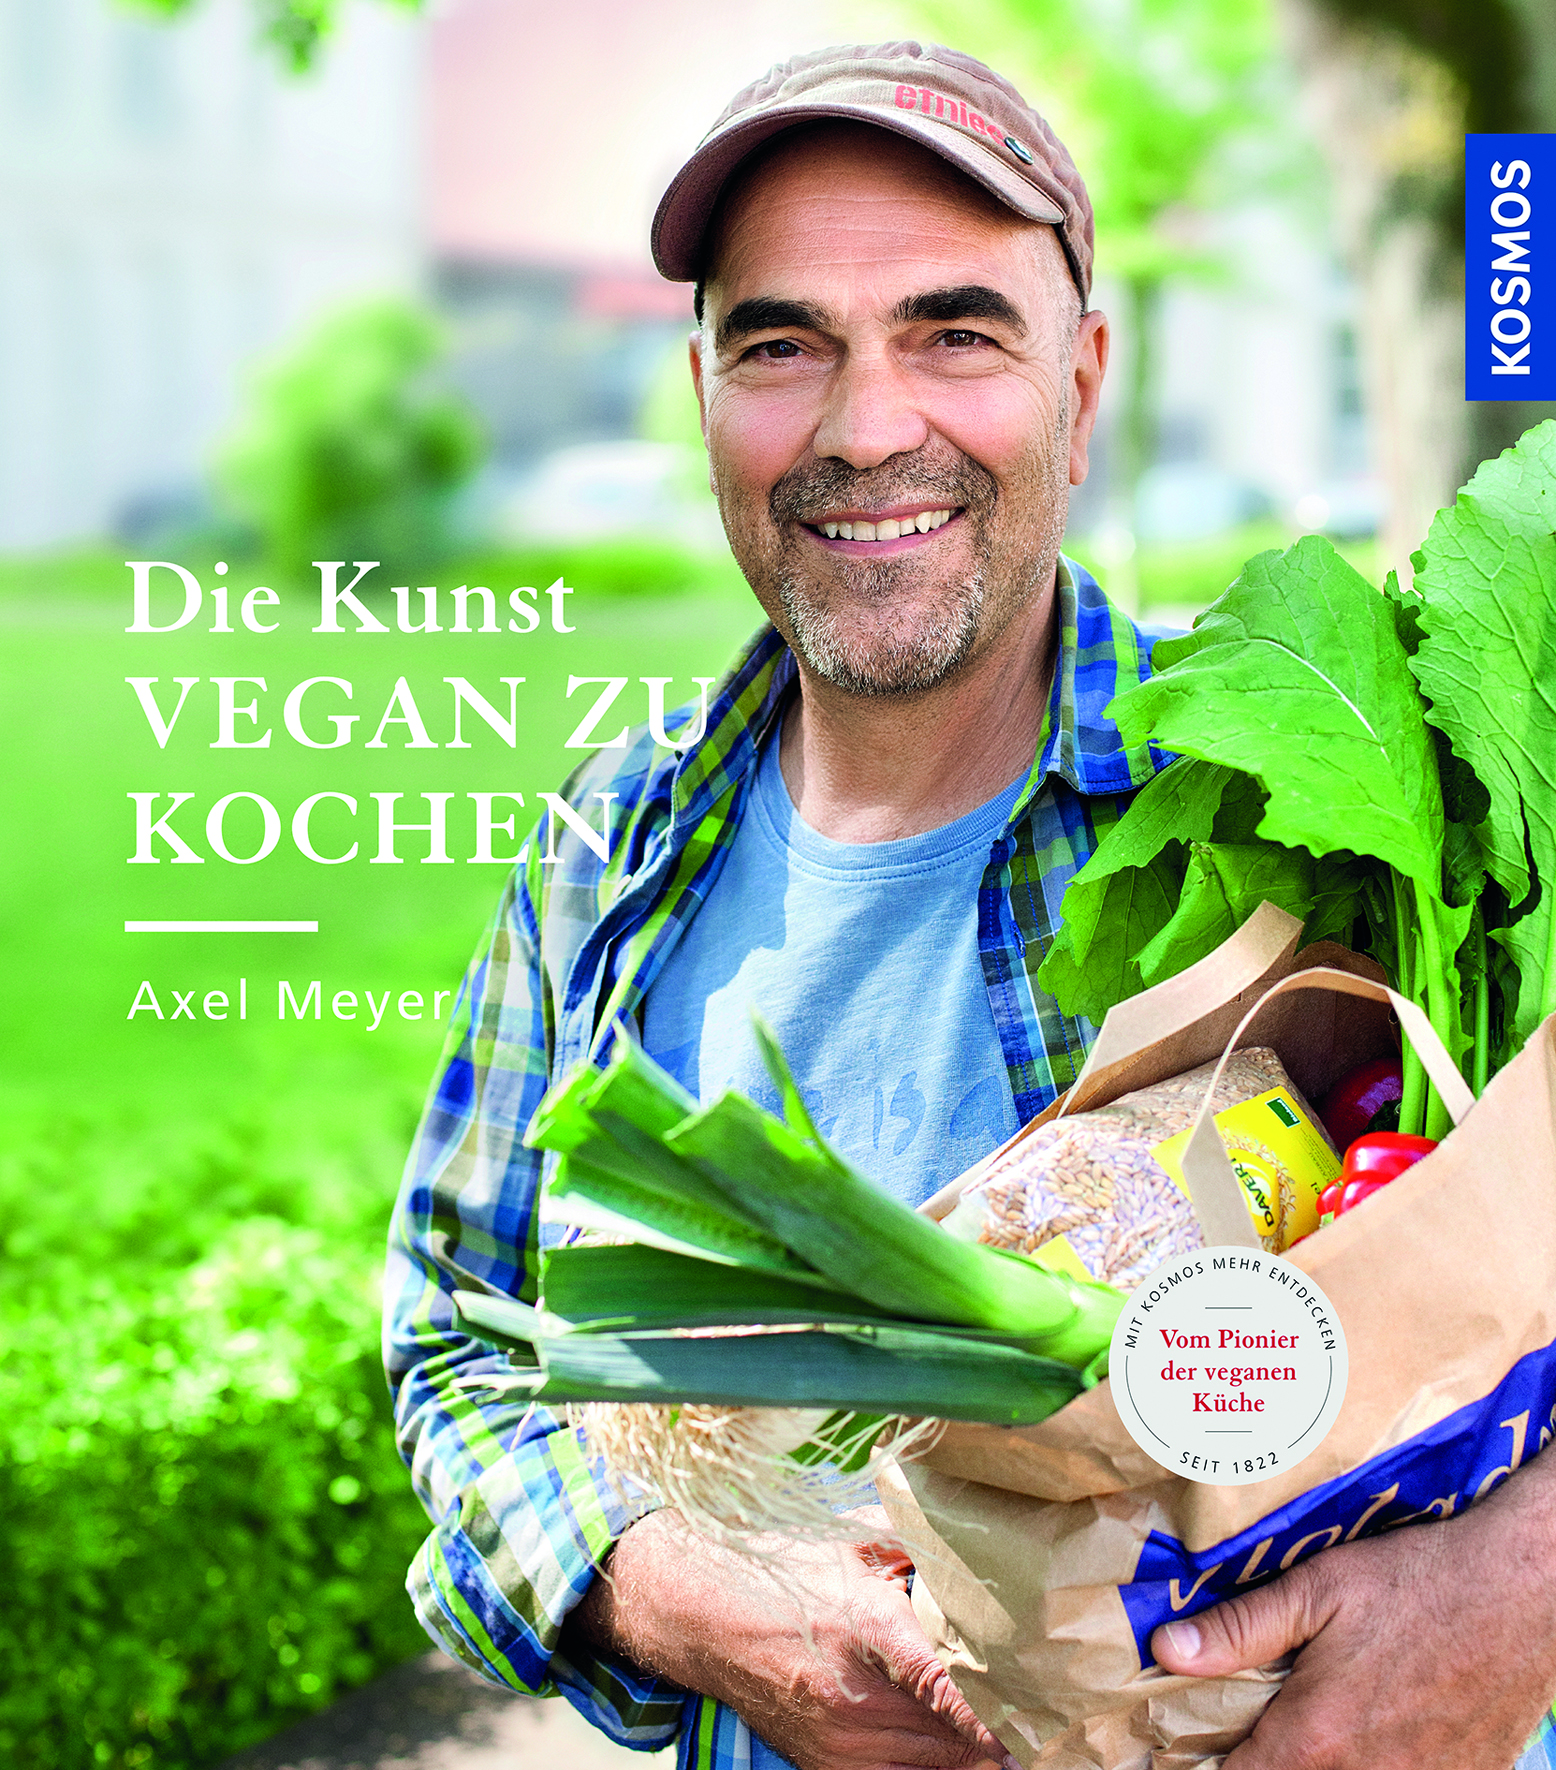 https://proveg.com/de/wp-content/uploads/sites/5/2018/10/cover_kunst_vegan_kochen.jpg